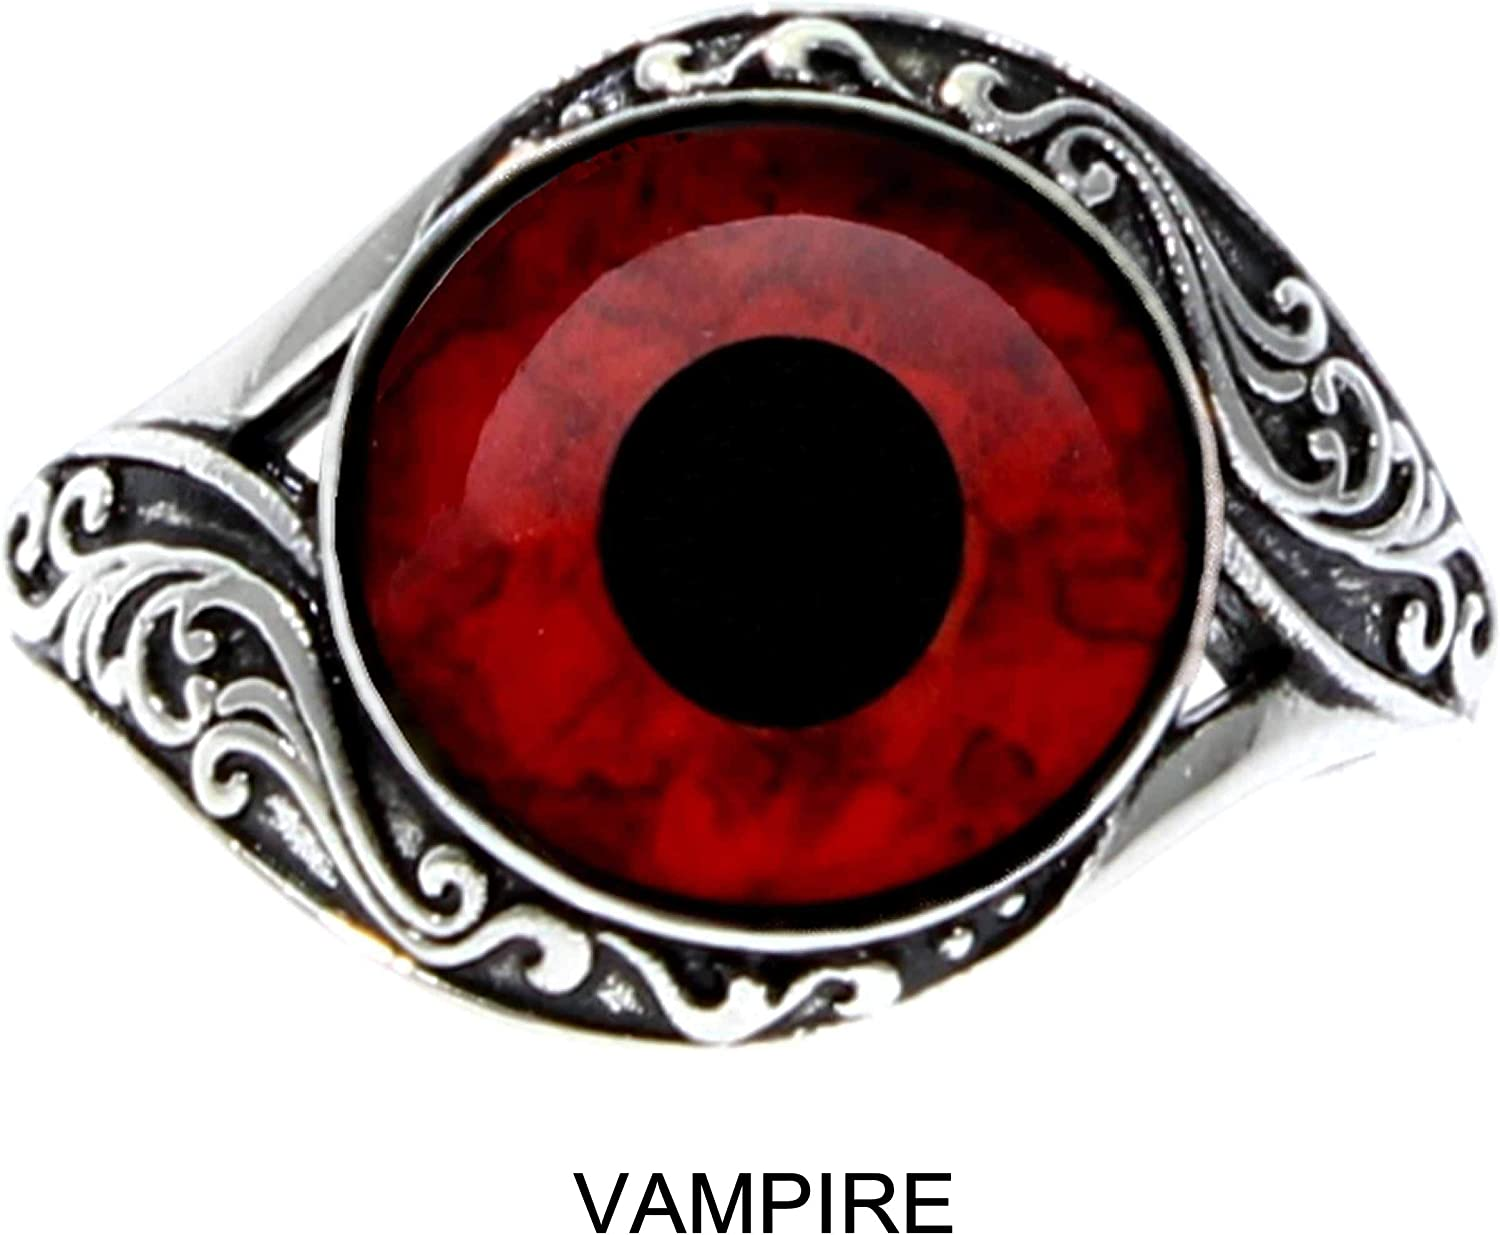 Steel Dragon Jewelers Stunning Designer Eye Ring Choose from 21 Handcrafted Animal and Fantasy Glass Eyes